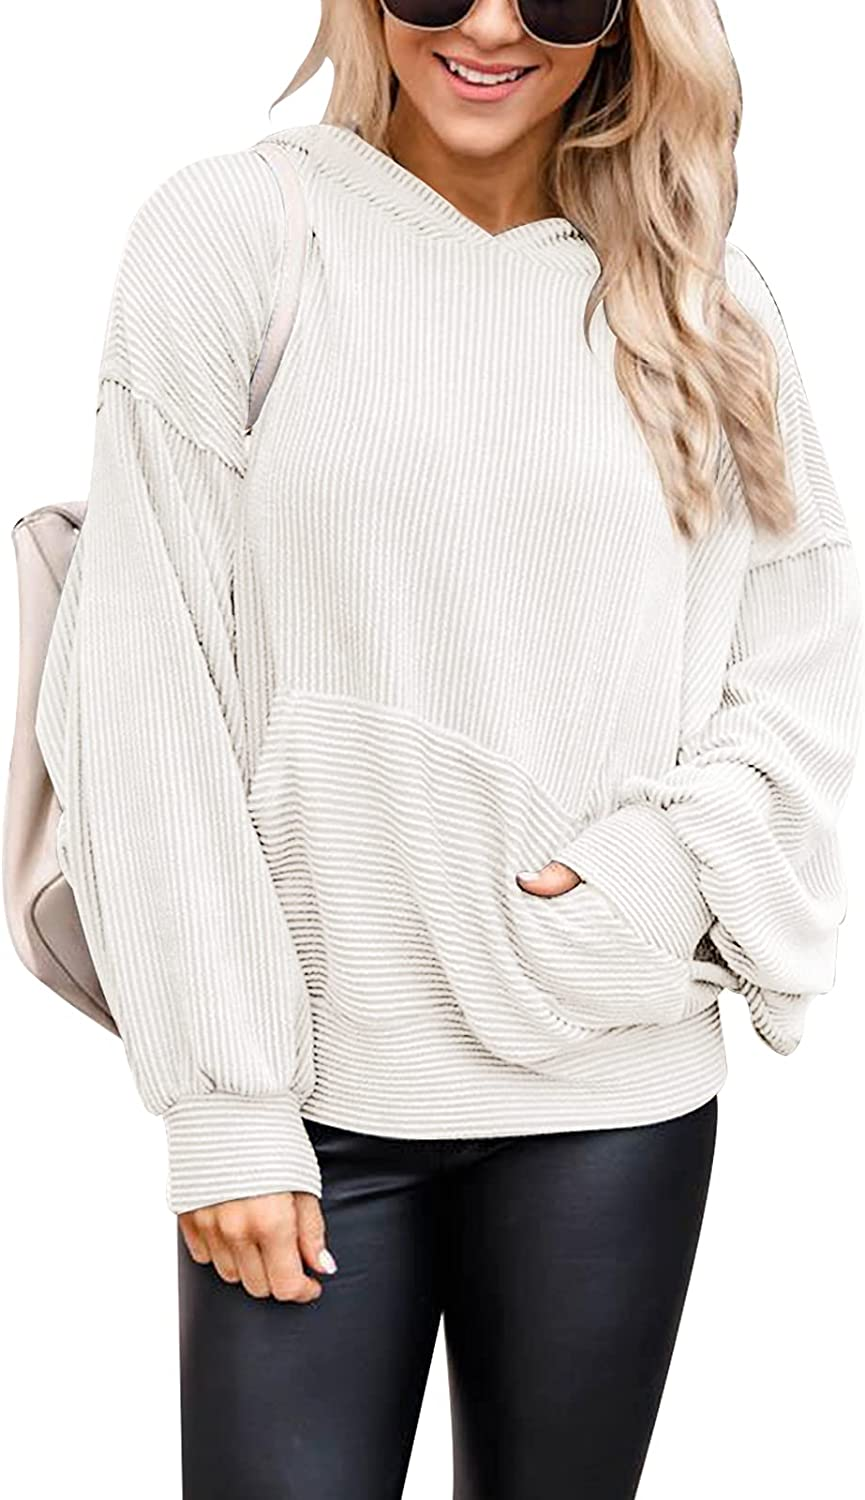 PRETTYGARDEN Women's Casual Solid Color Long Sleeve Ribbed Pullover Hoodie Sweatshirt Tops With Pockets